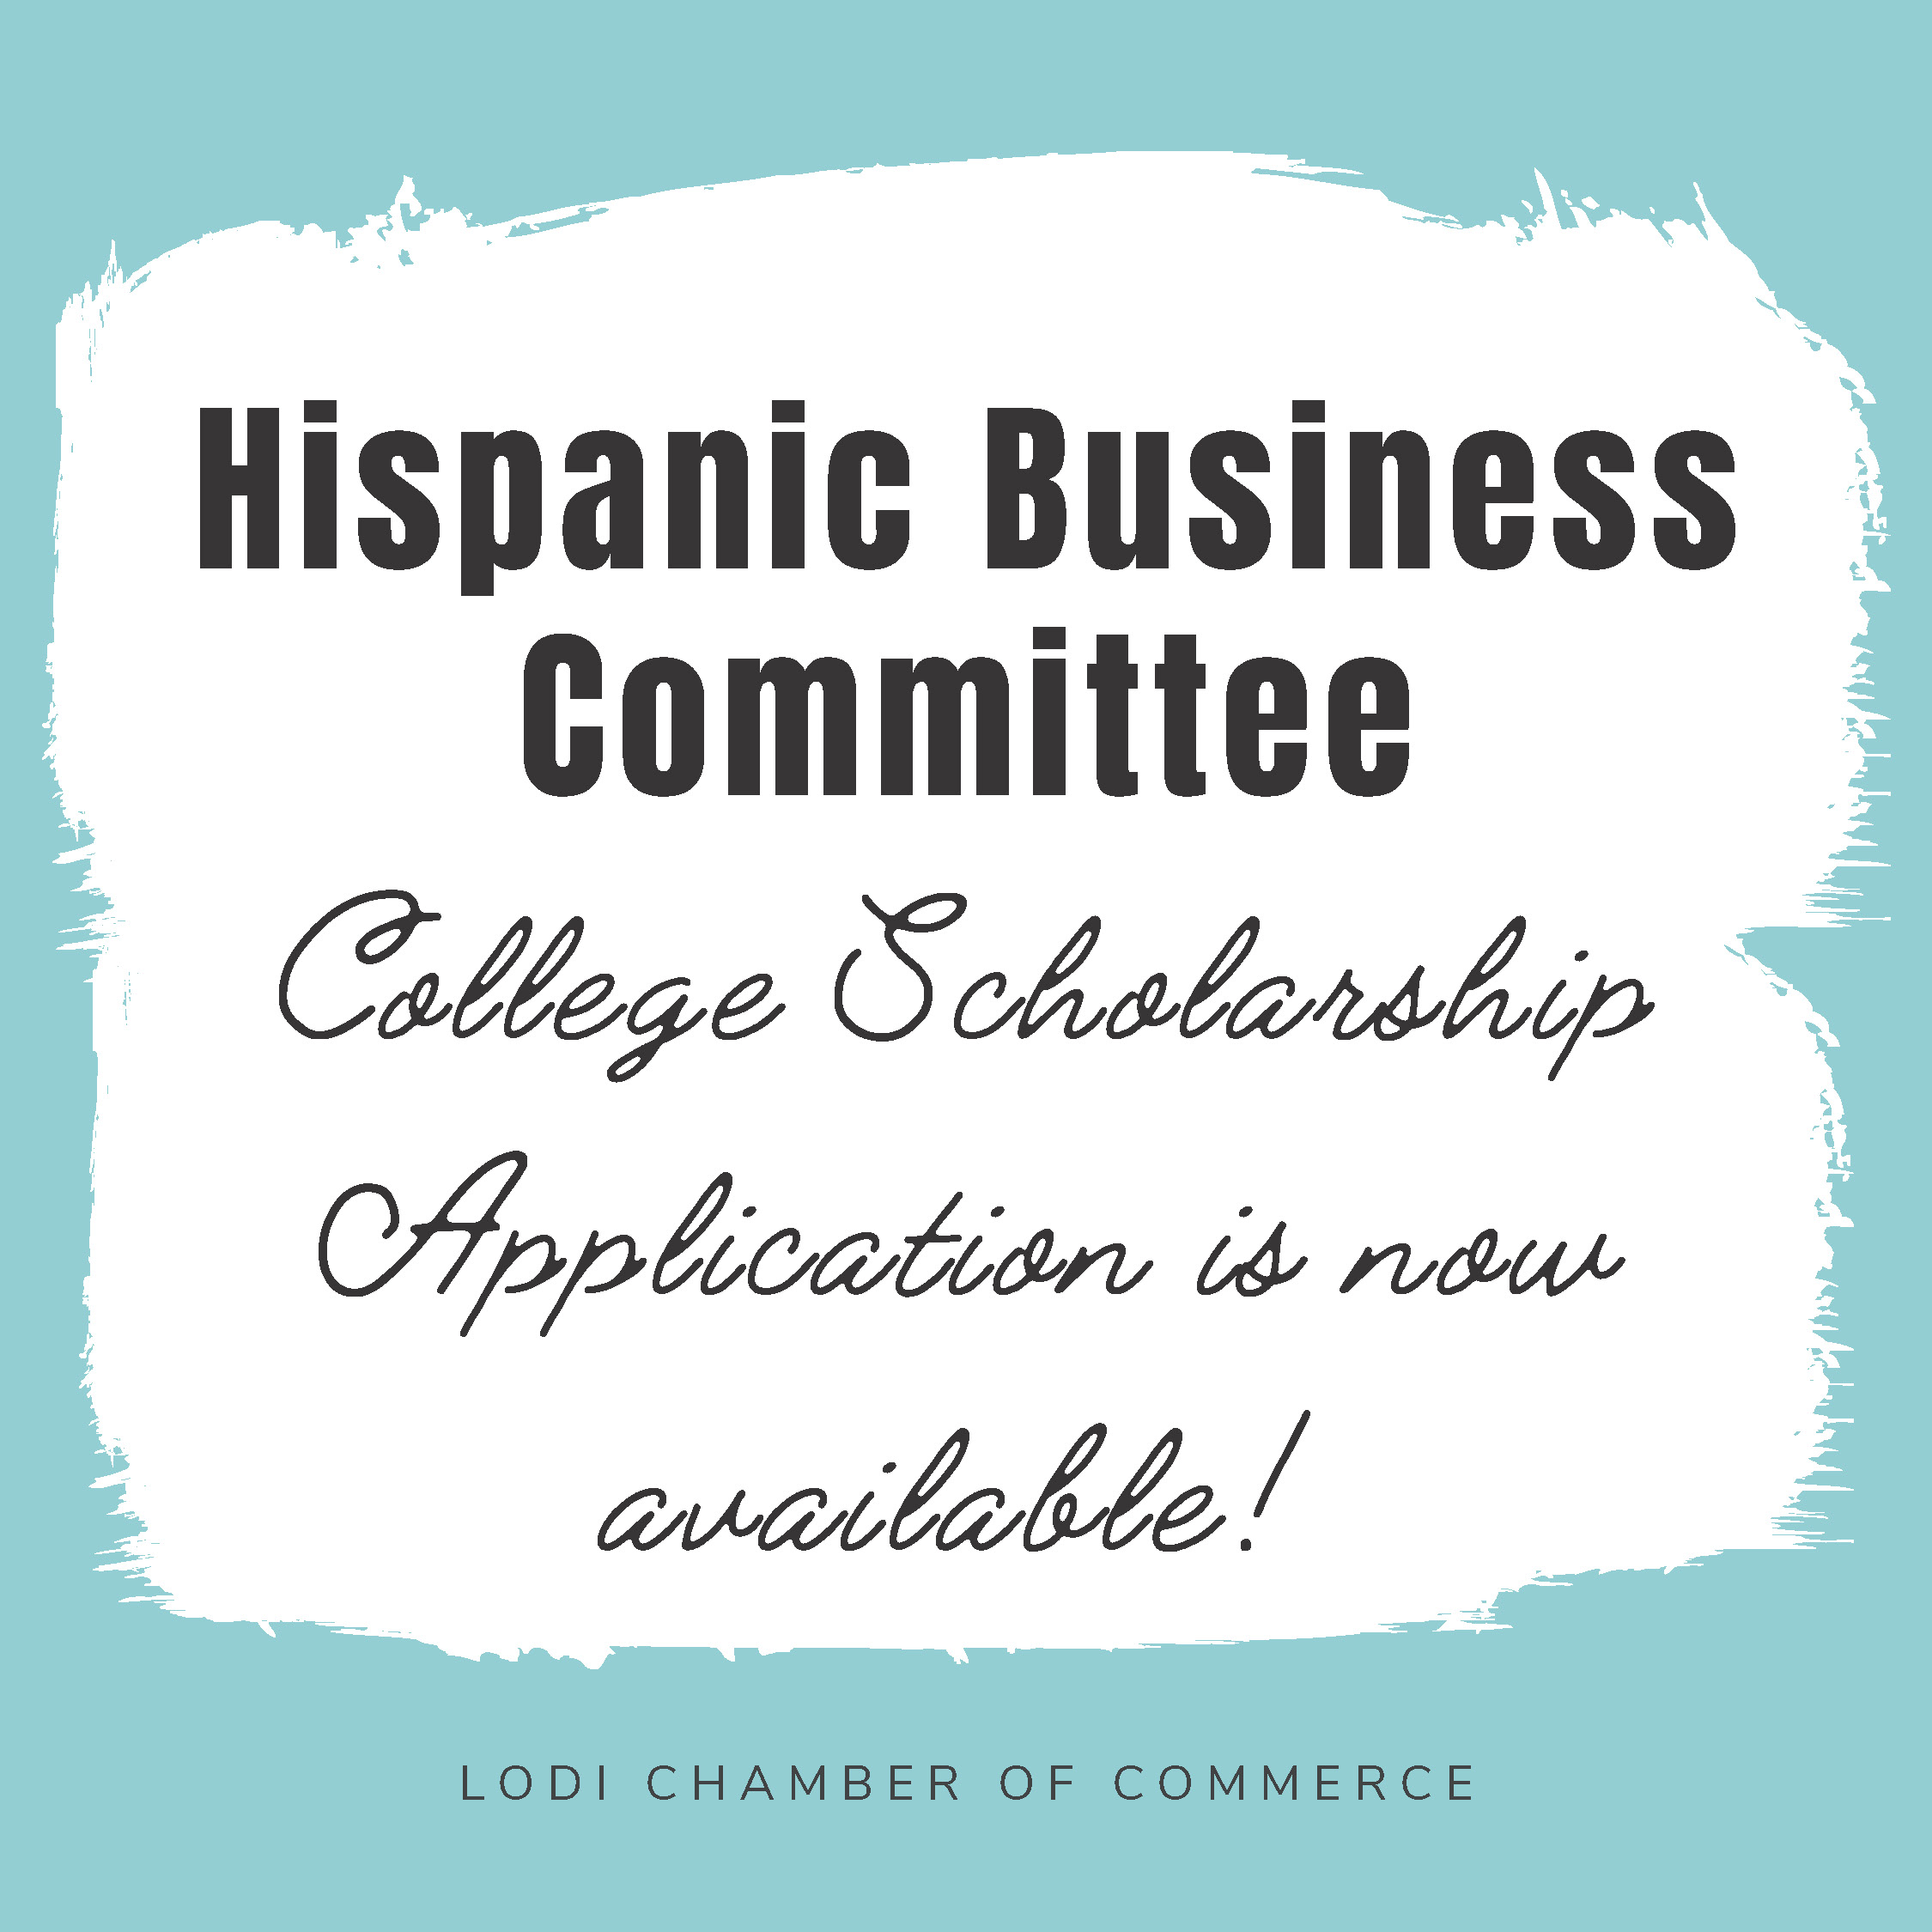 Hispanic Business Committee Scholarships